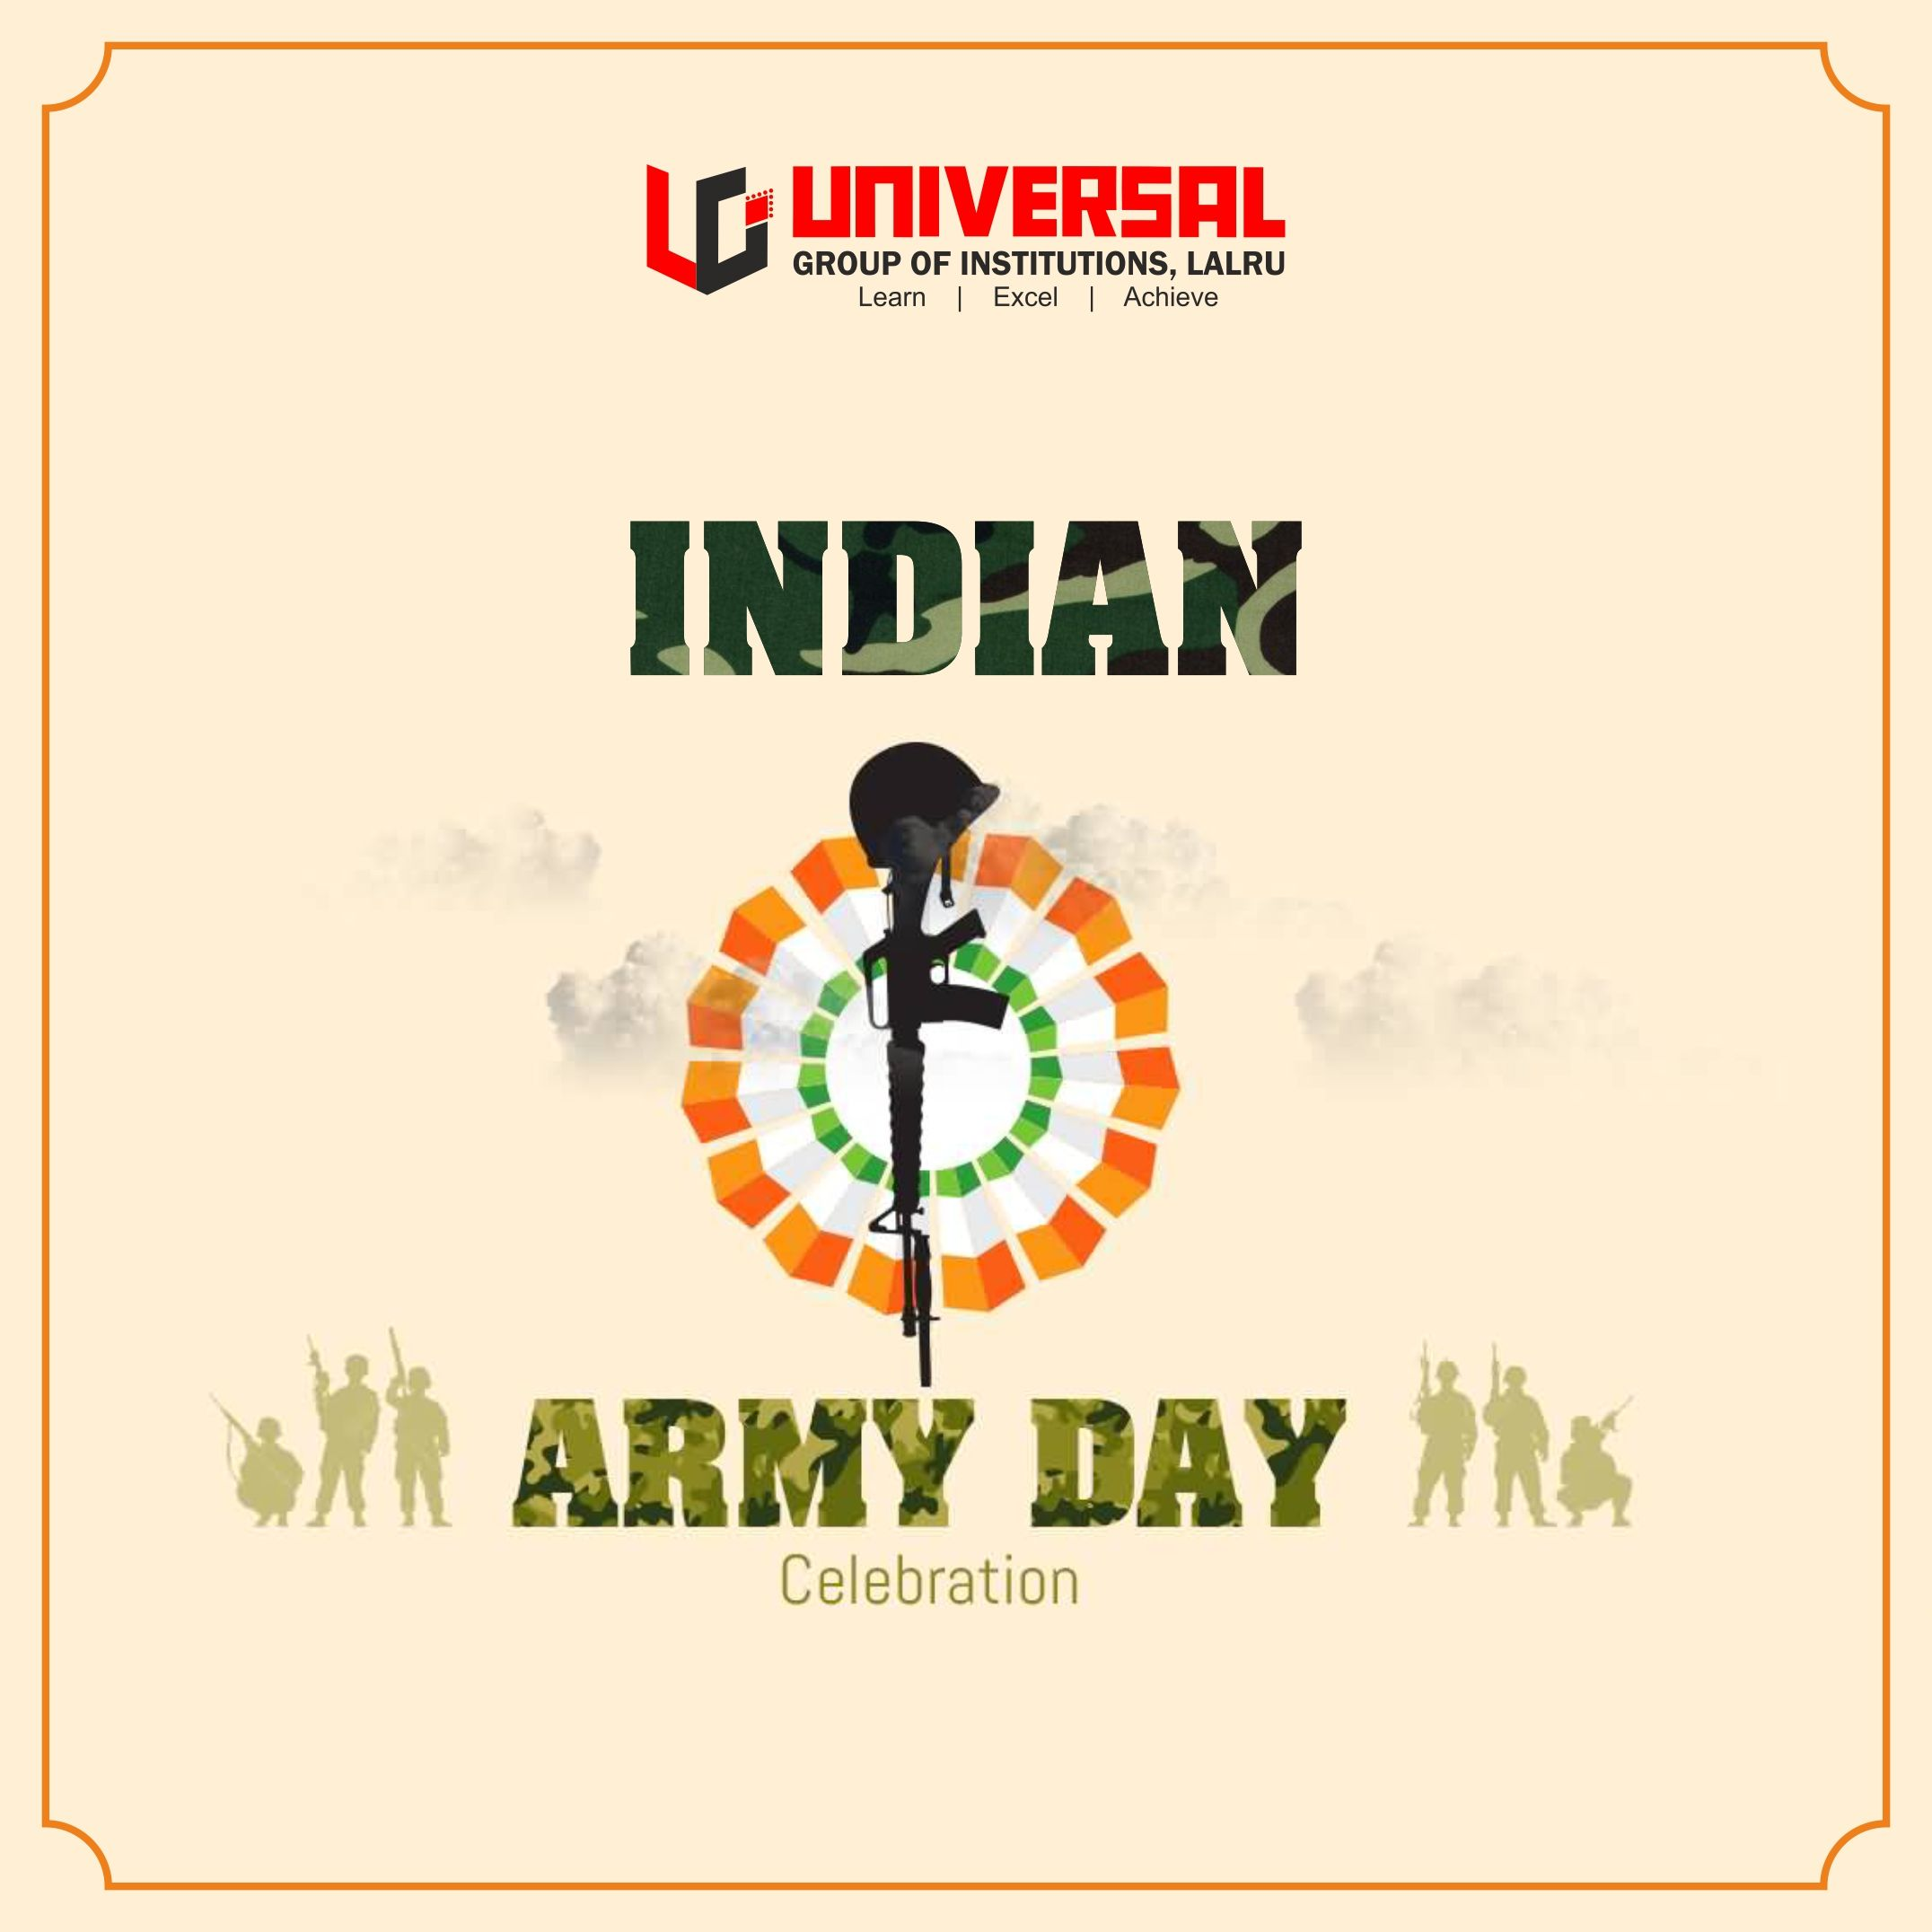 Indian Army Day Is Another Event In The Country To Honor The Valiant Soldiers Protecting Our Nation Observed On January 15 Ev Army Day Indian Army The Valiant